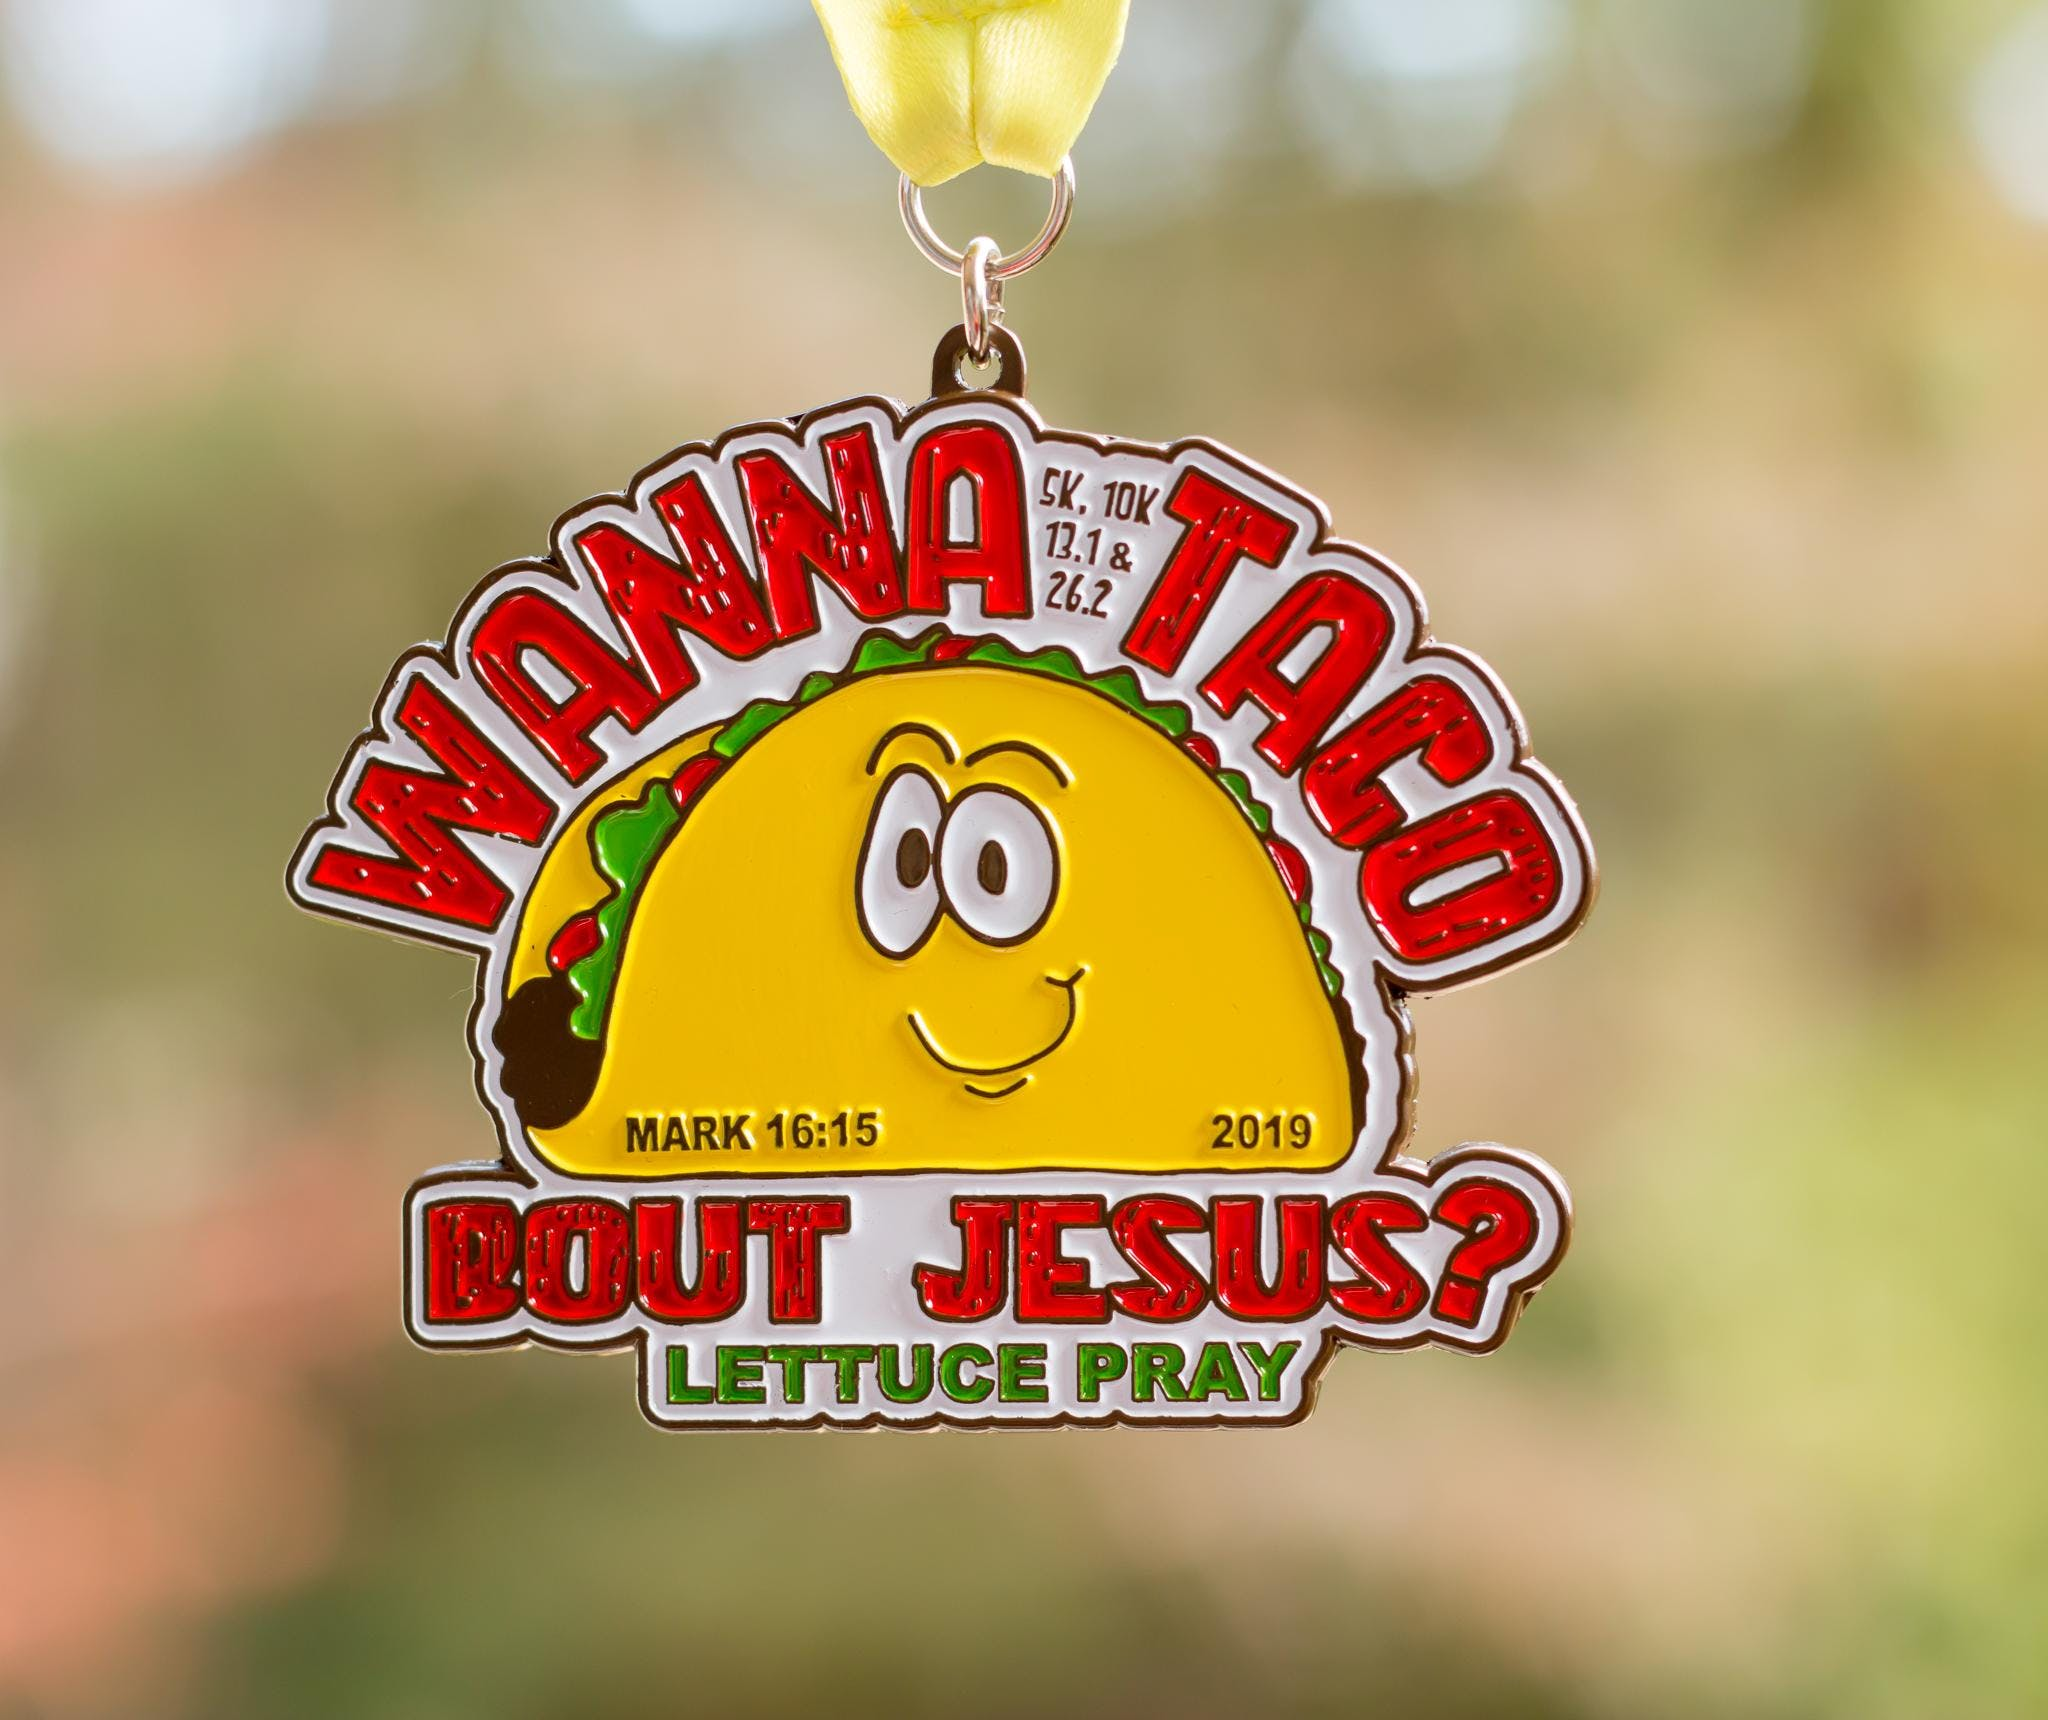 2019 Wanna Taco Bout Jesus 1 Mile, 5K, 10K, 1